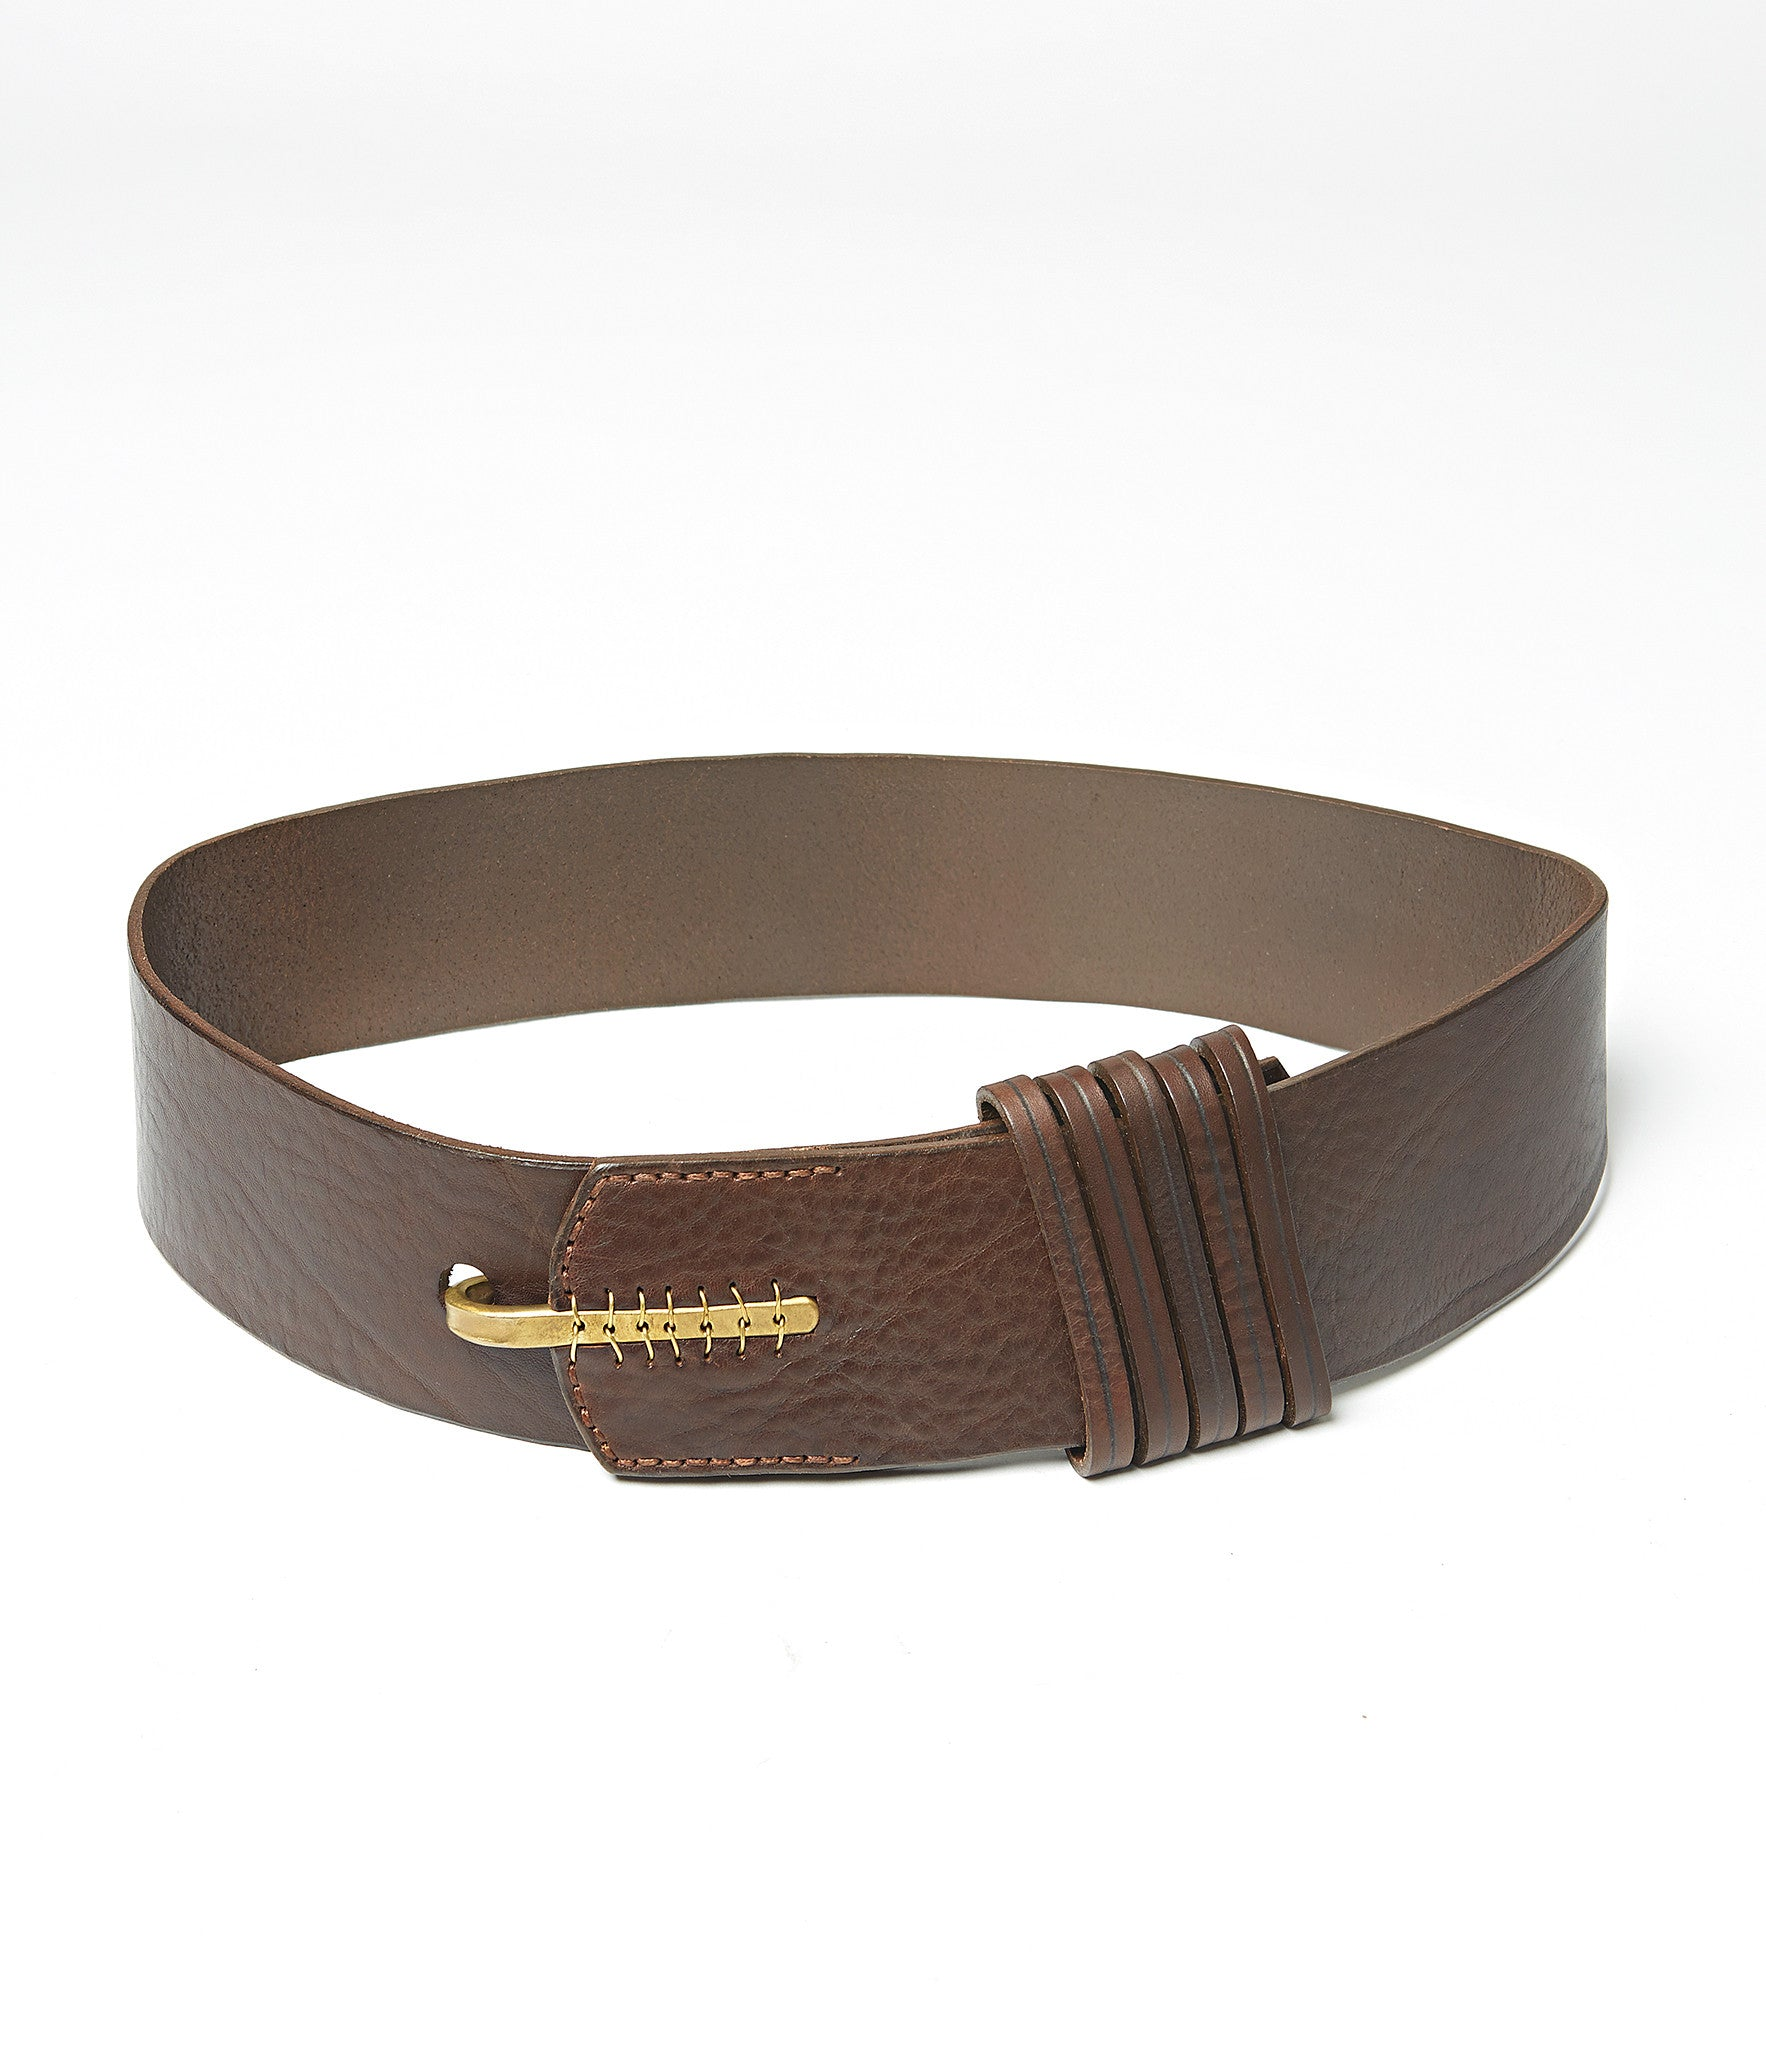 Johnny Farah 5 Loop Hook Leather Belt